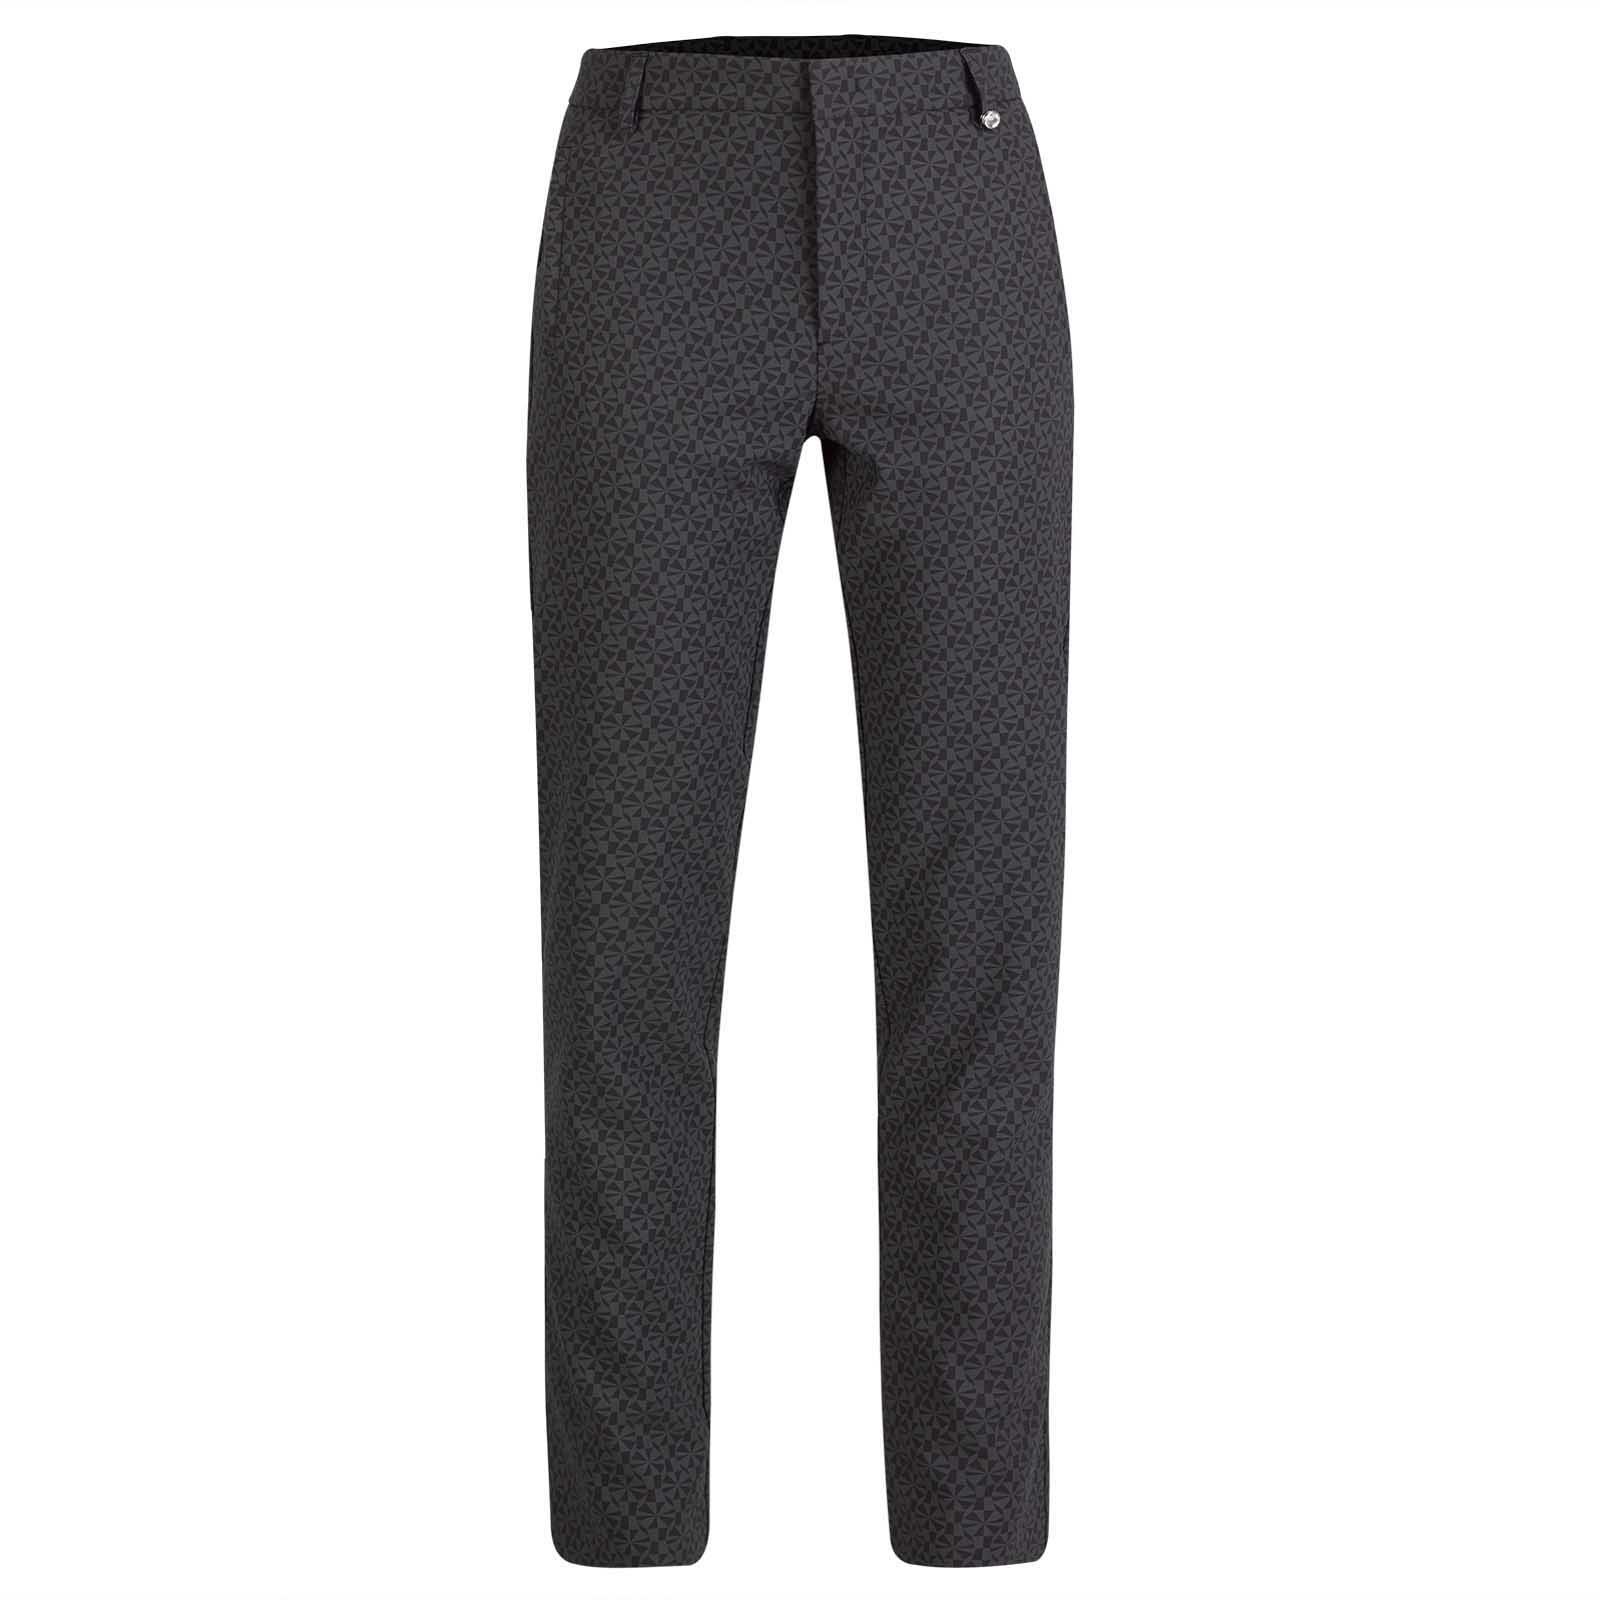 Ladies' 7/8 printed golf trousers in 4-way stretch